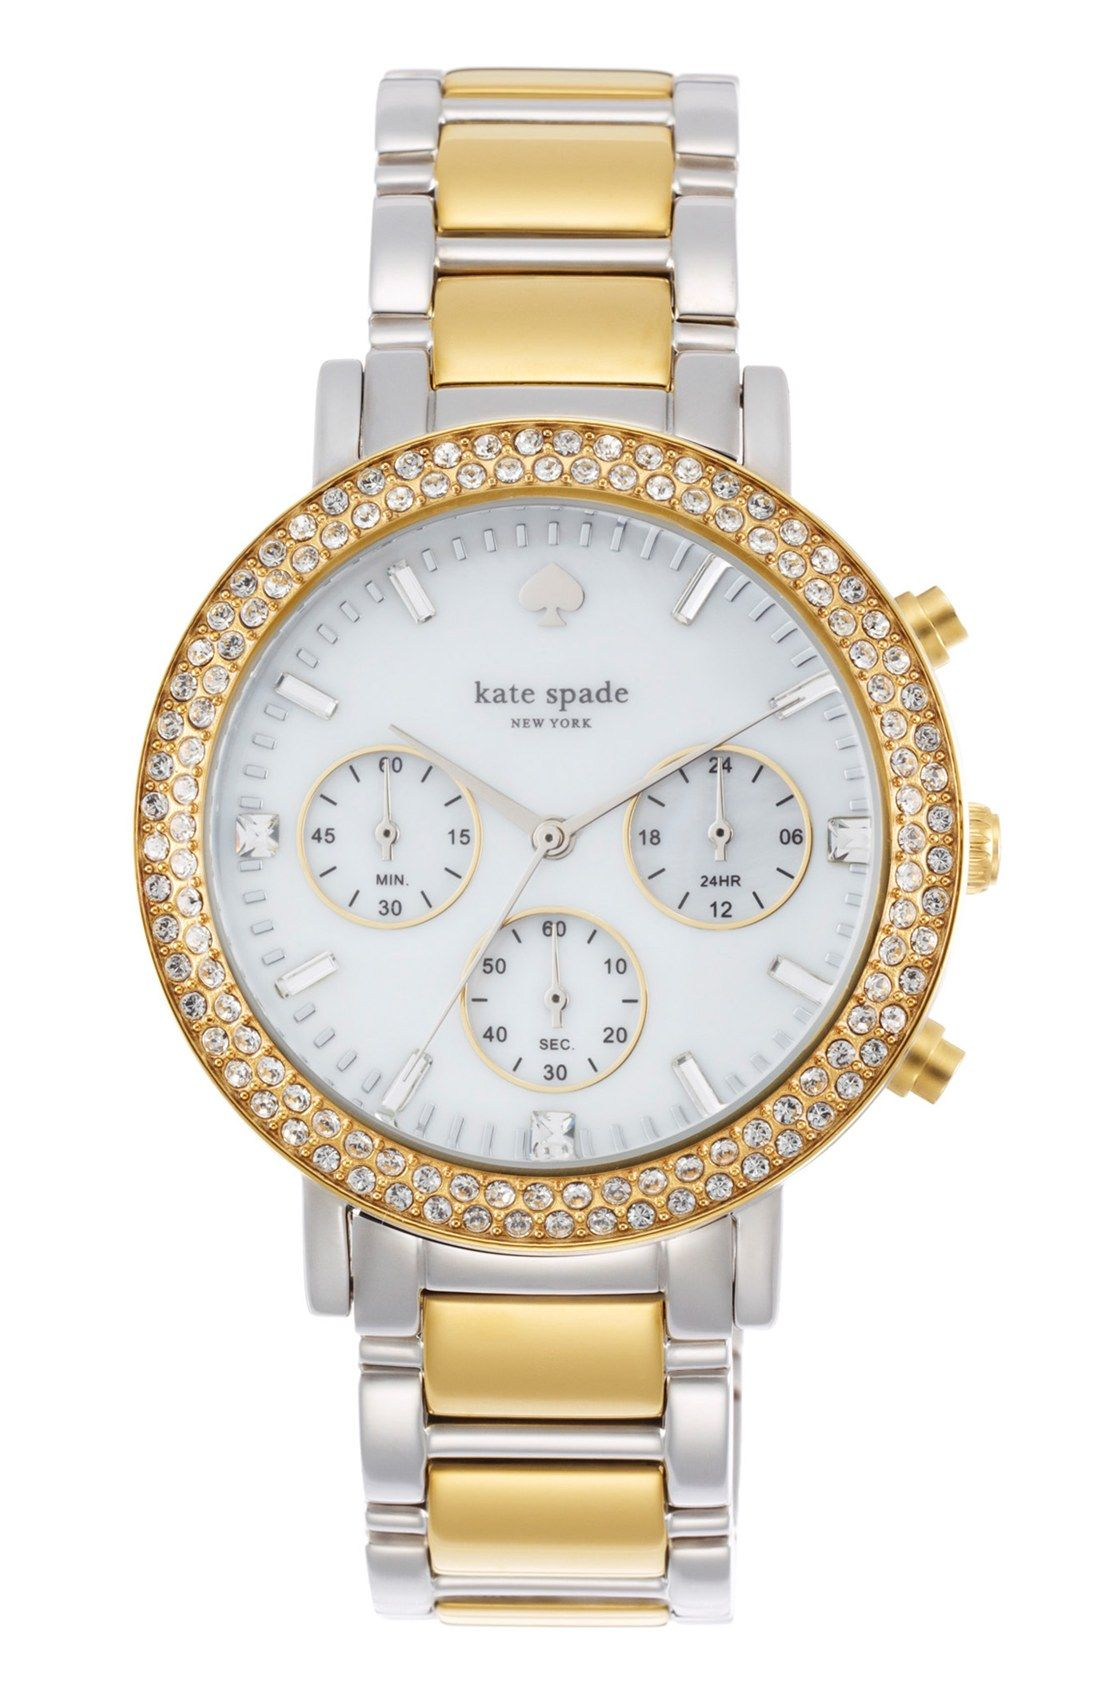 9df8b897a8e60 This sparkly two-toned Kate Spade watch is going on the wish list ...